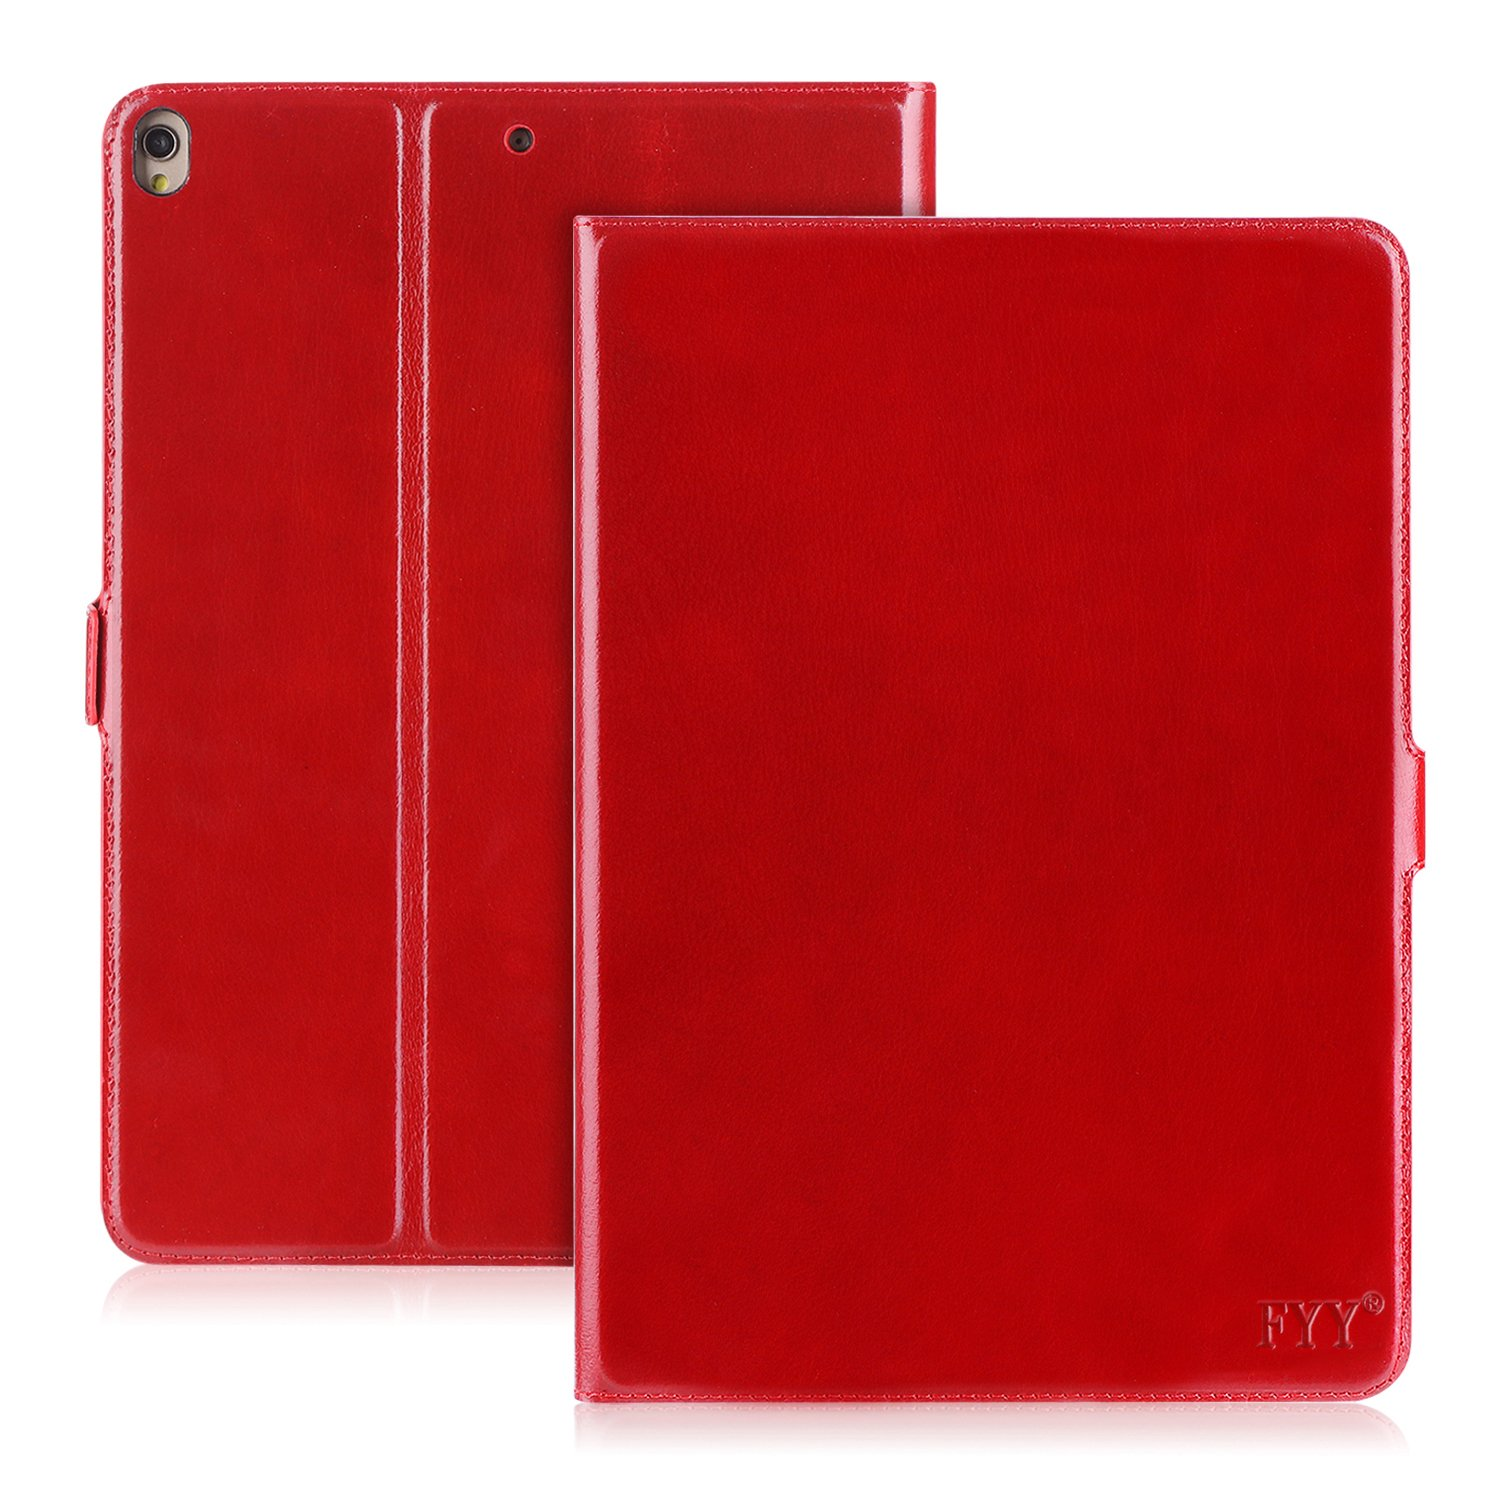 FYY Case for iPad Pro 10.5, Handmade Genuine Leather Case with Kickstand Function for iPad Pro 10.5 Wine Red